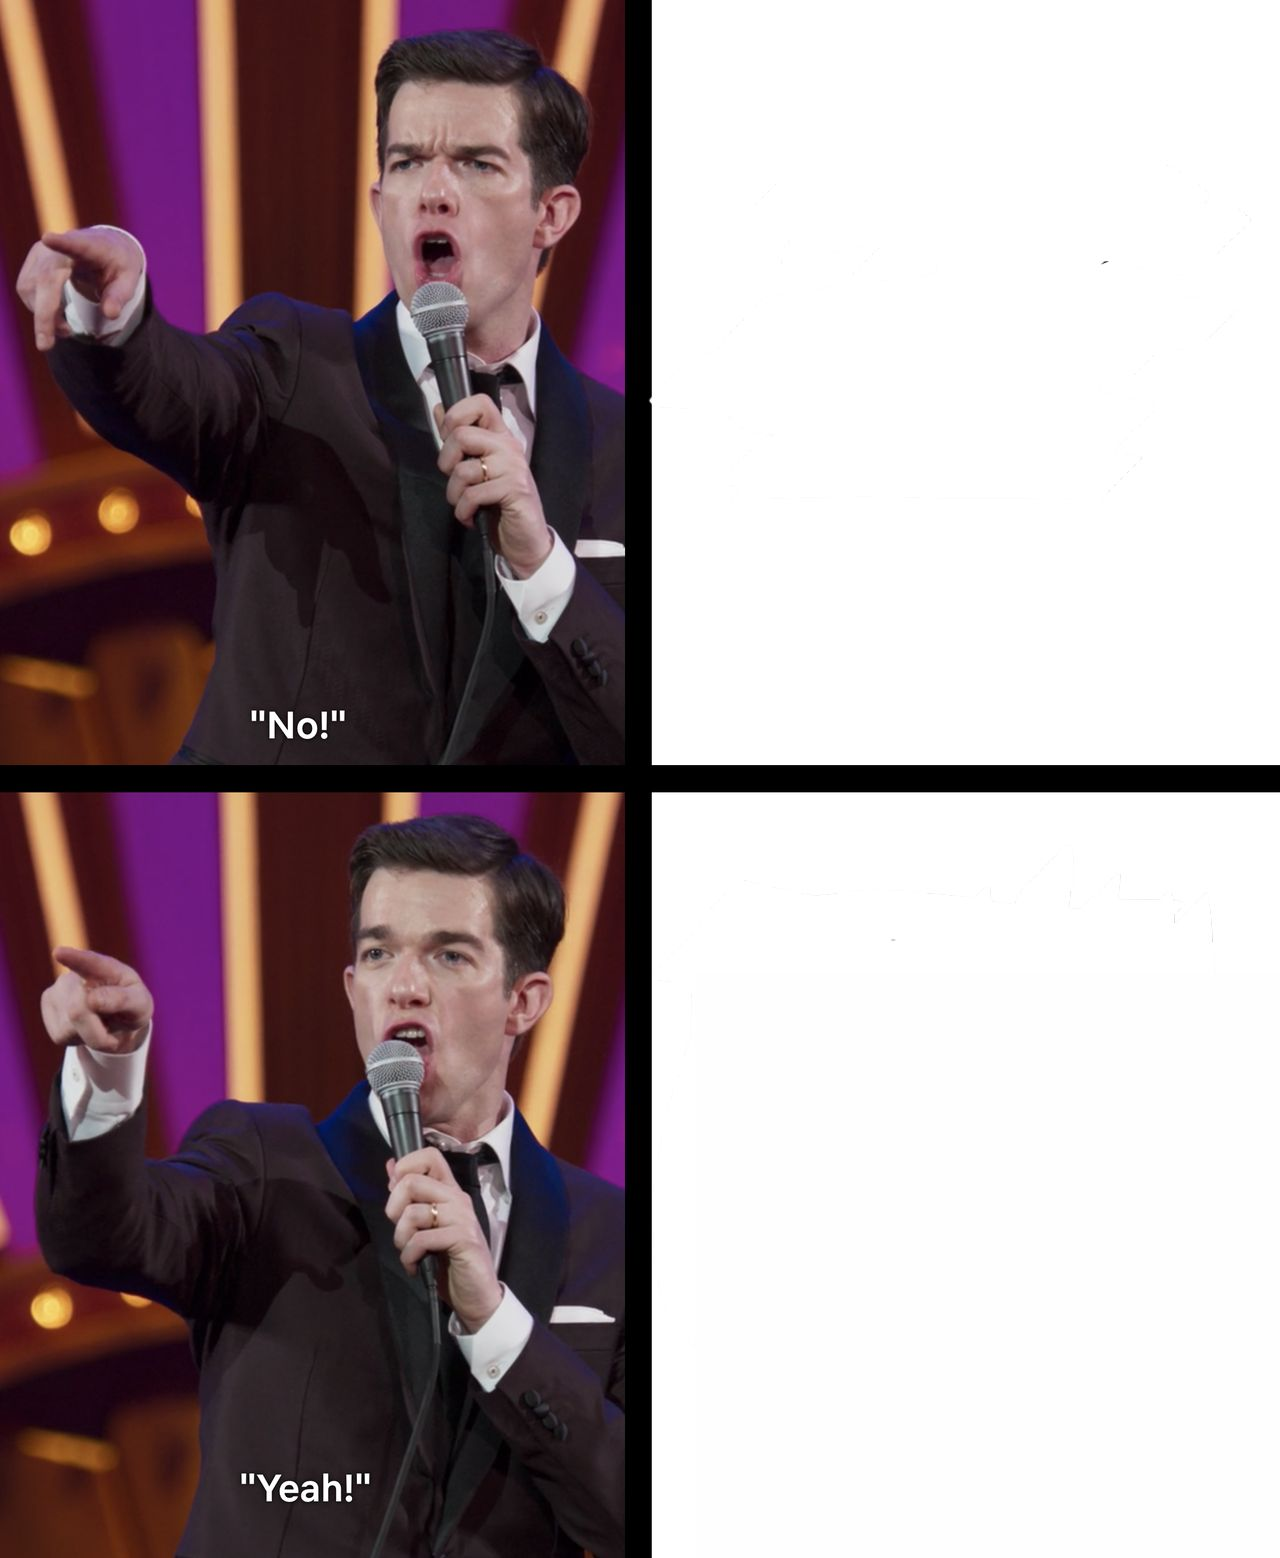 Yes No Meme Template : template, Mulaney, No/Yes, Blank, Template, Imgflip